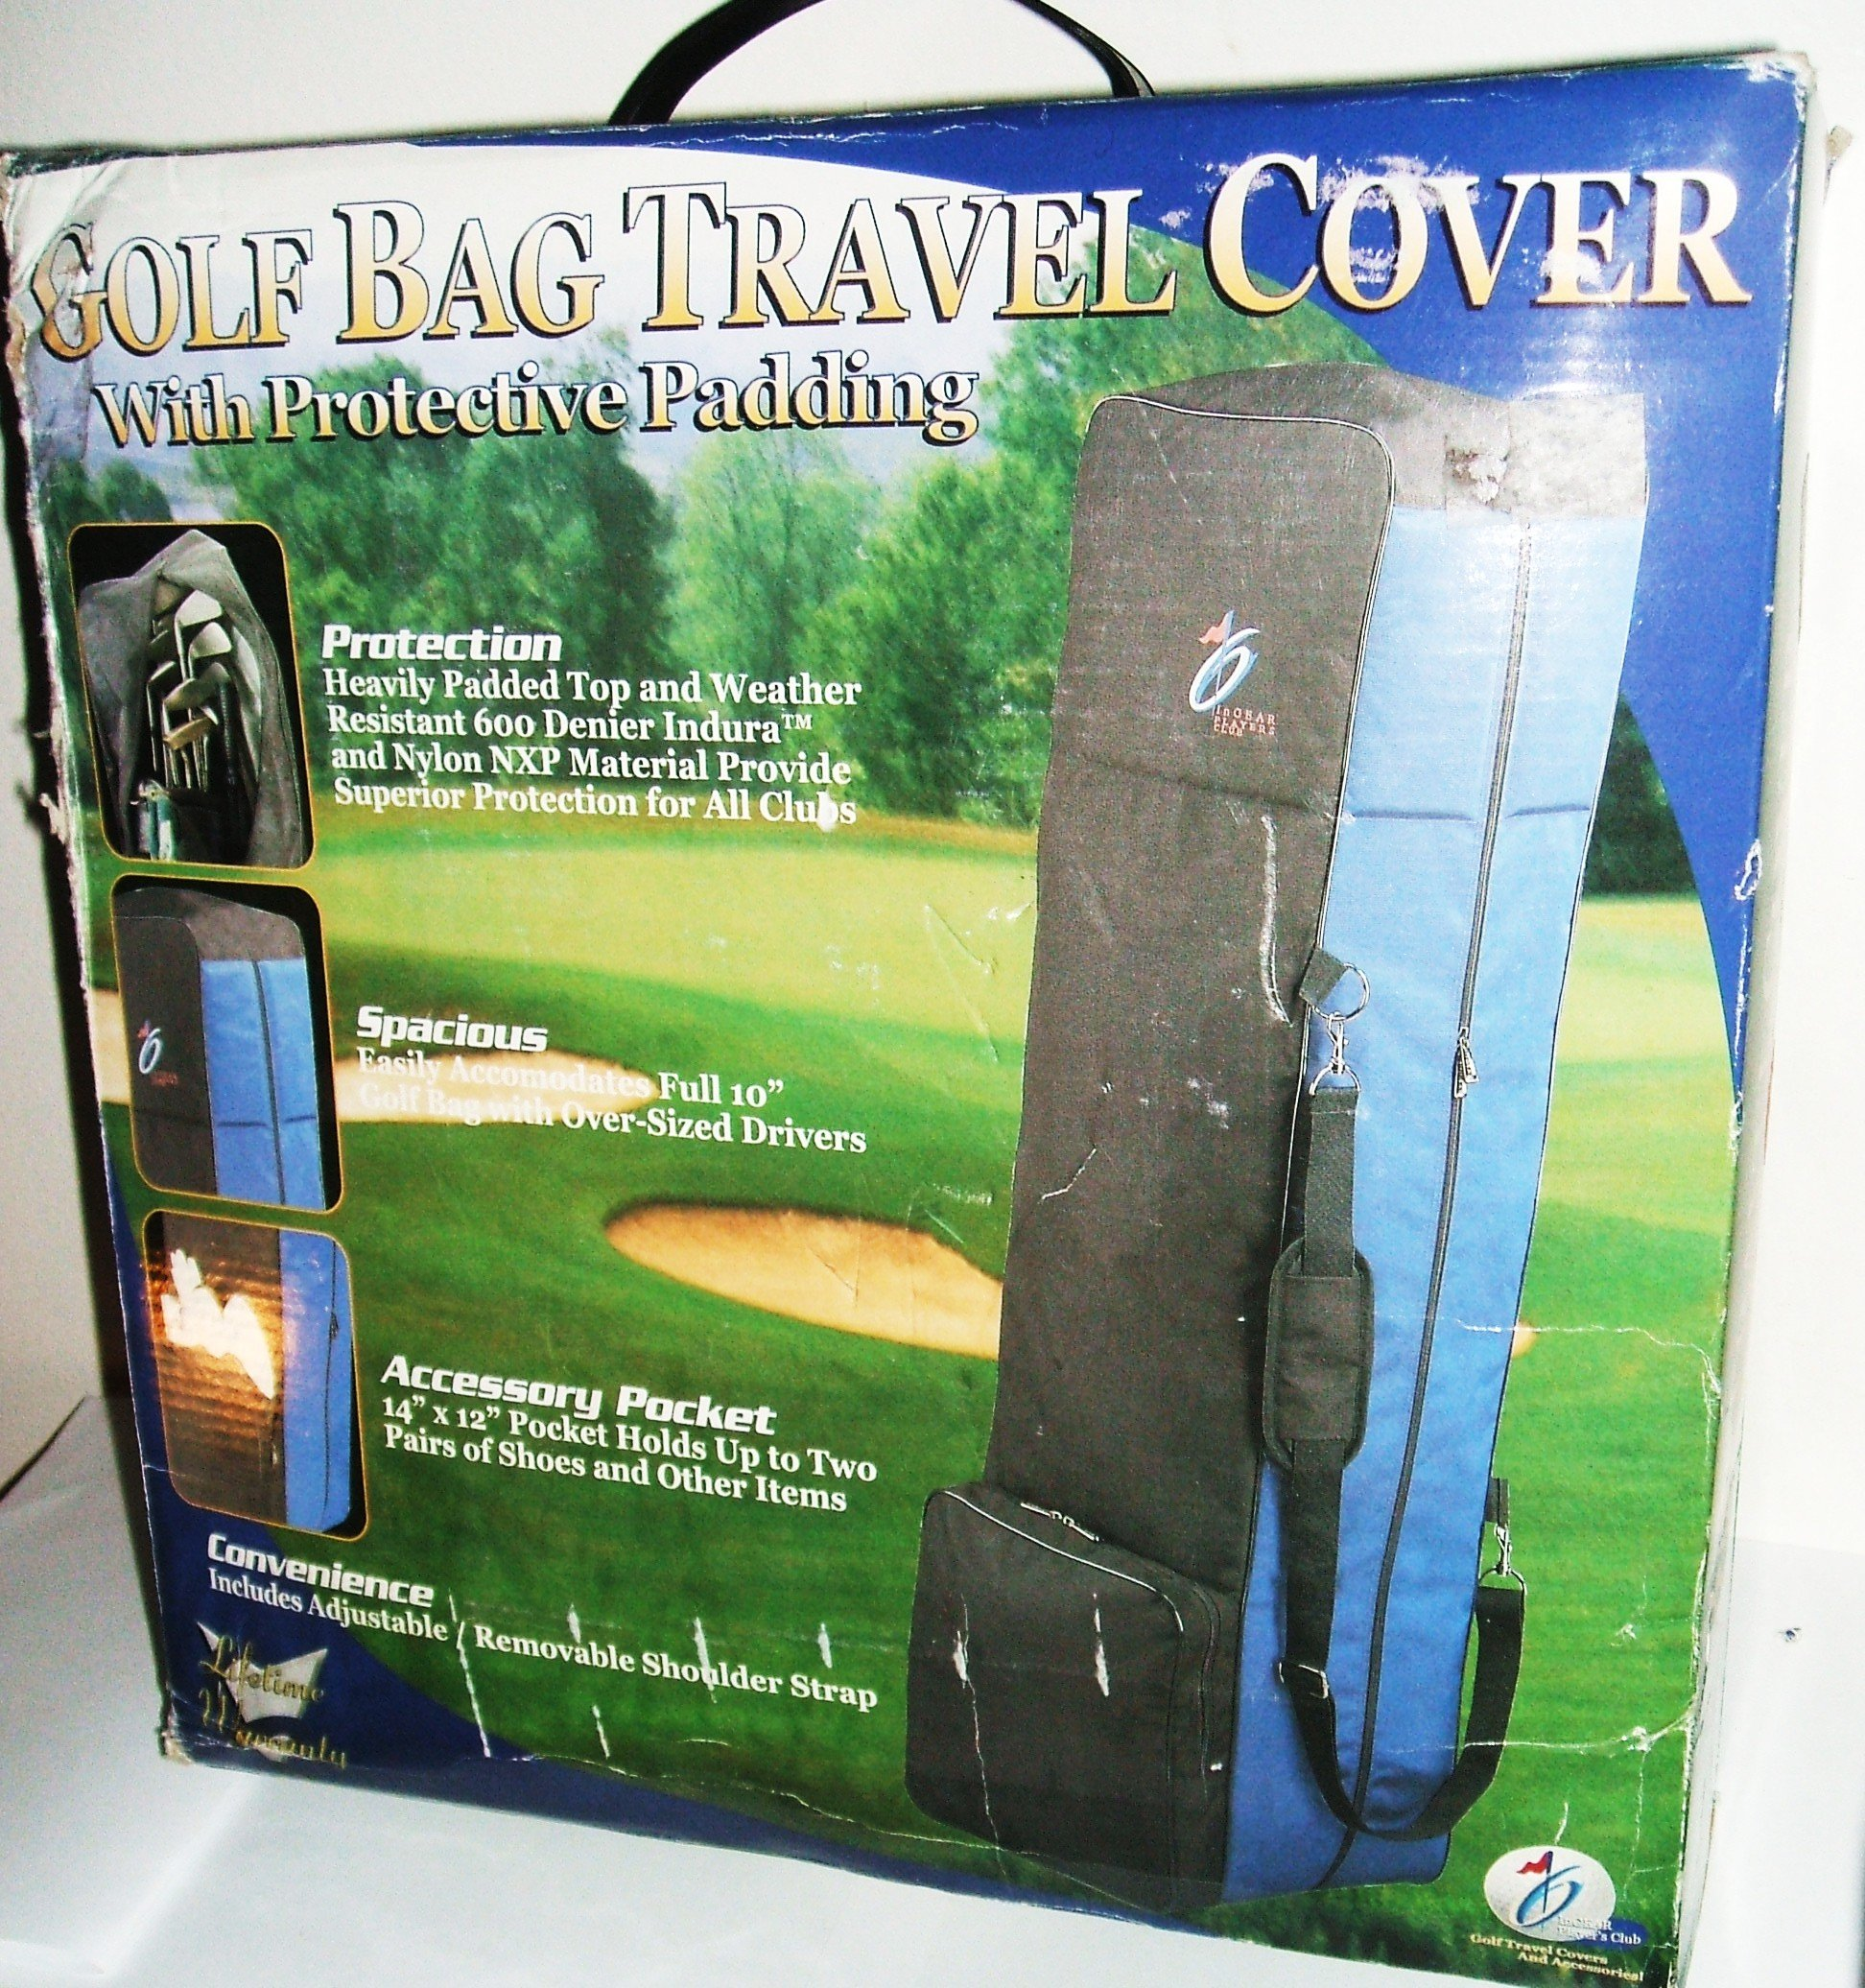 InGear Golf Bag Travel Cover with Protective Padding by INGEAR (Image #1)